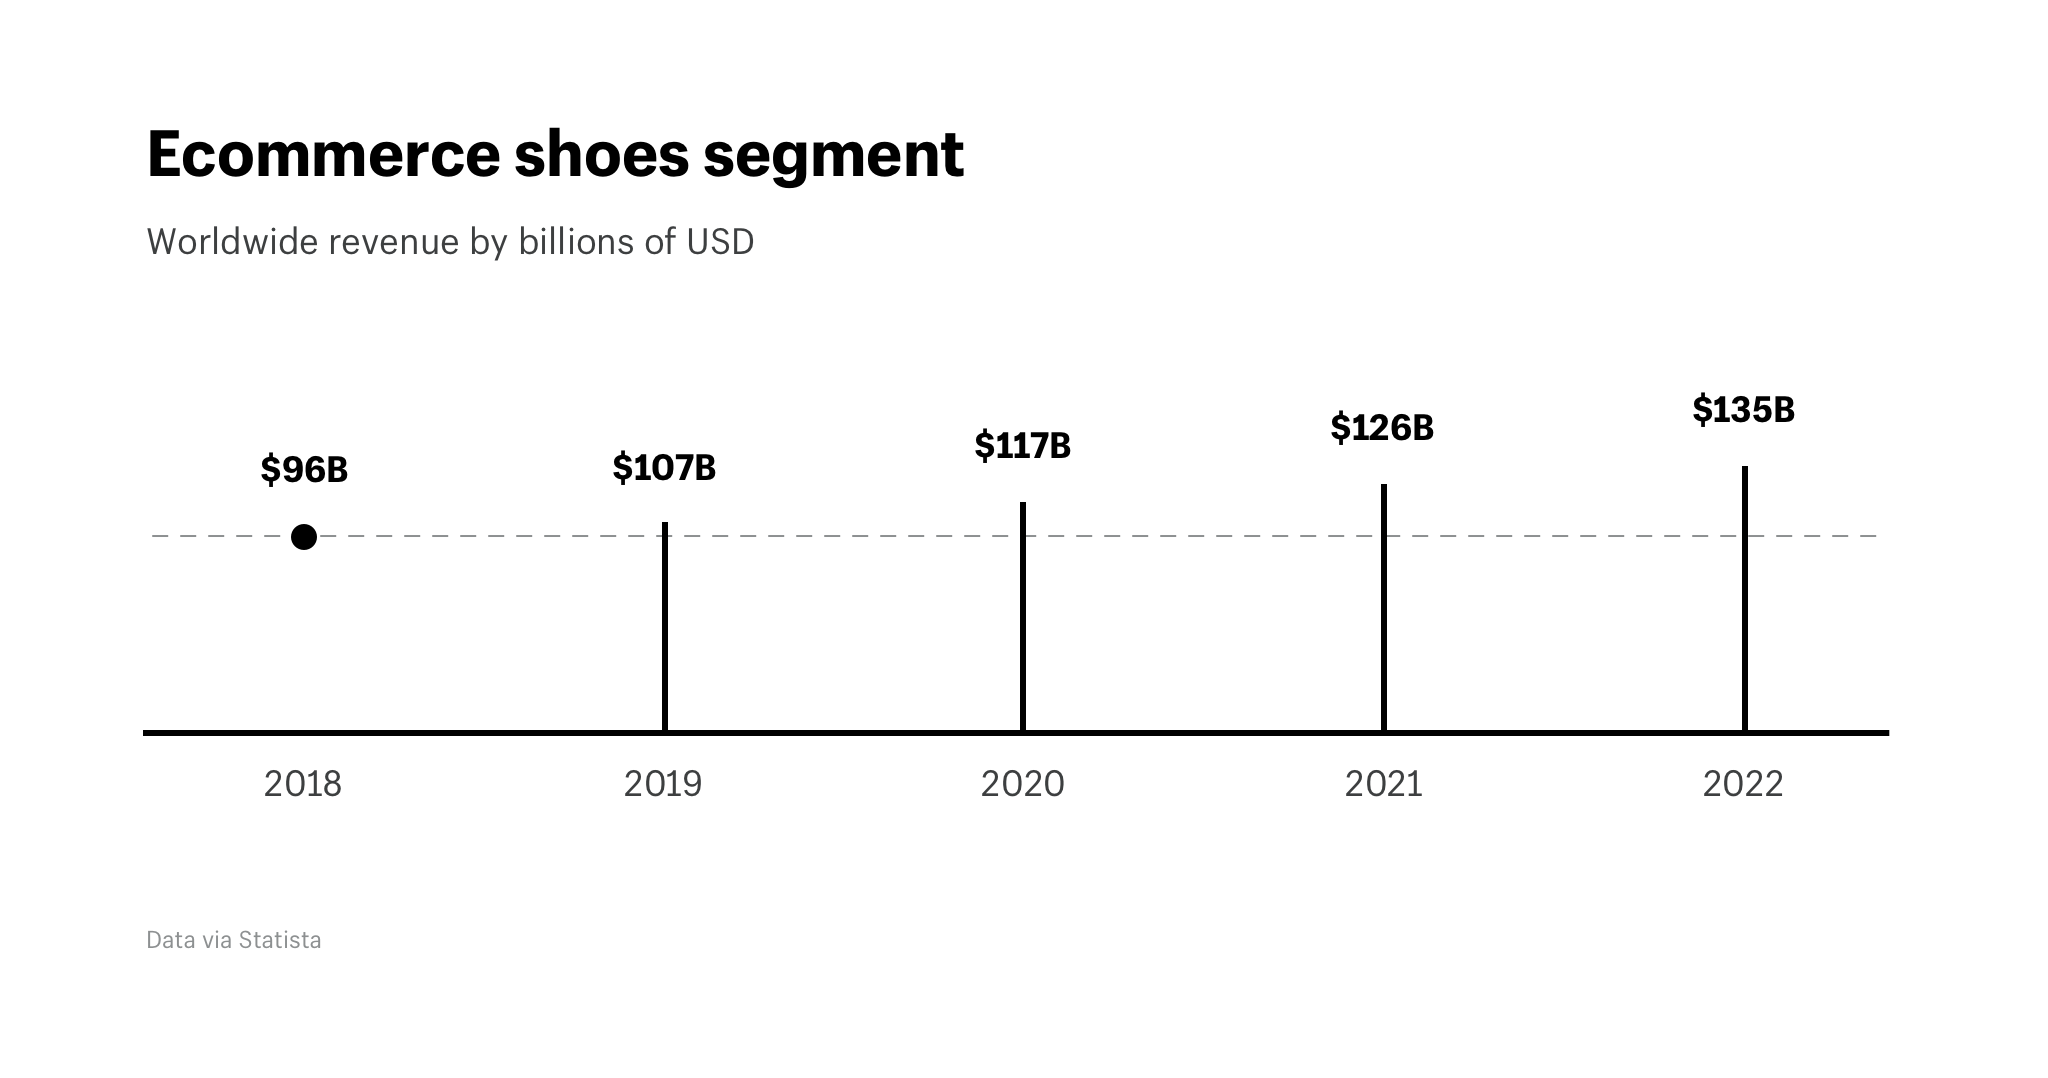 Ecommerce shoes segment worldwide revenue